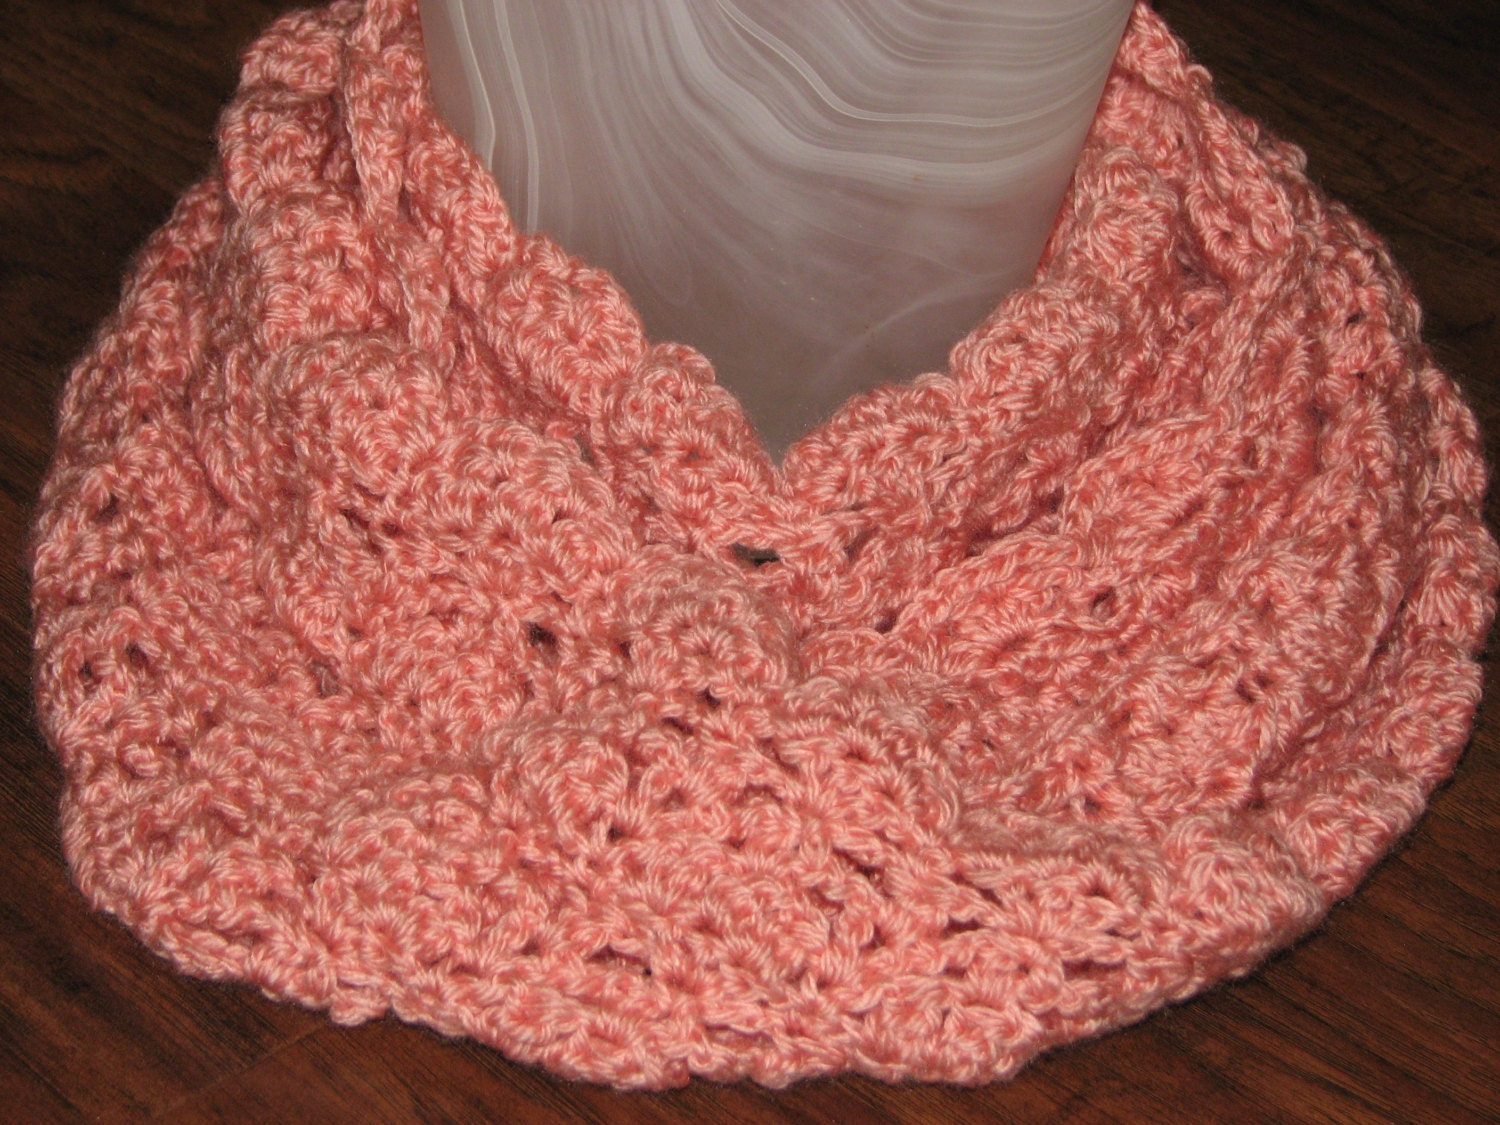 Crochet Pattern For Lacy Infinity Scarf : CROCHET PATTERN Lace Infinity Scarf / Crochet Lacy Scarf